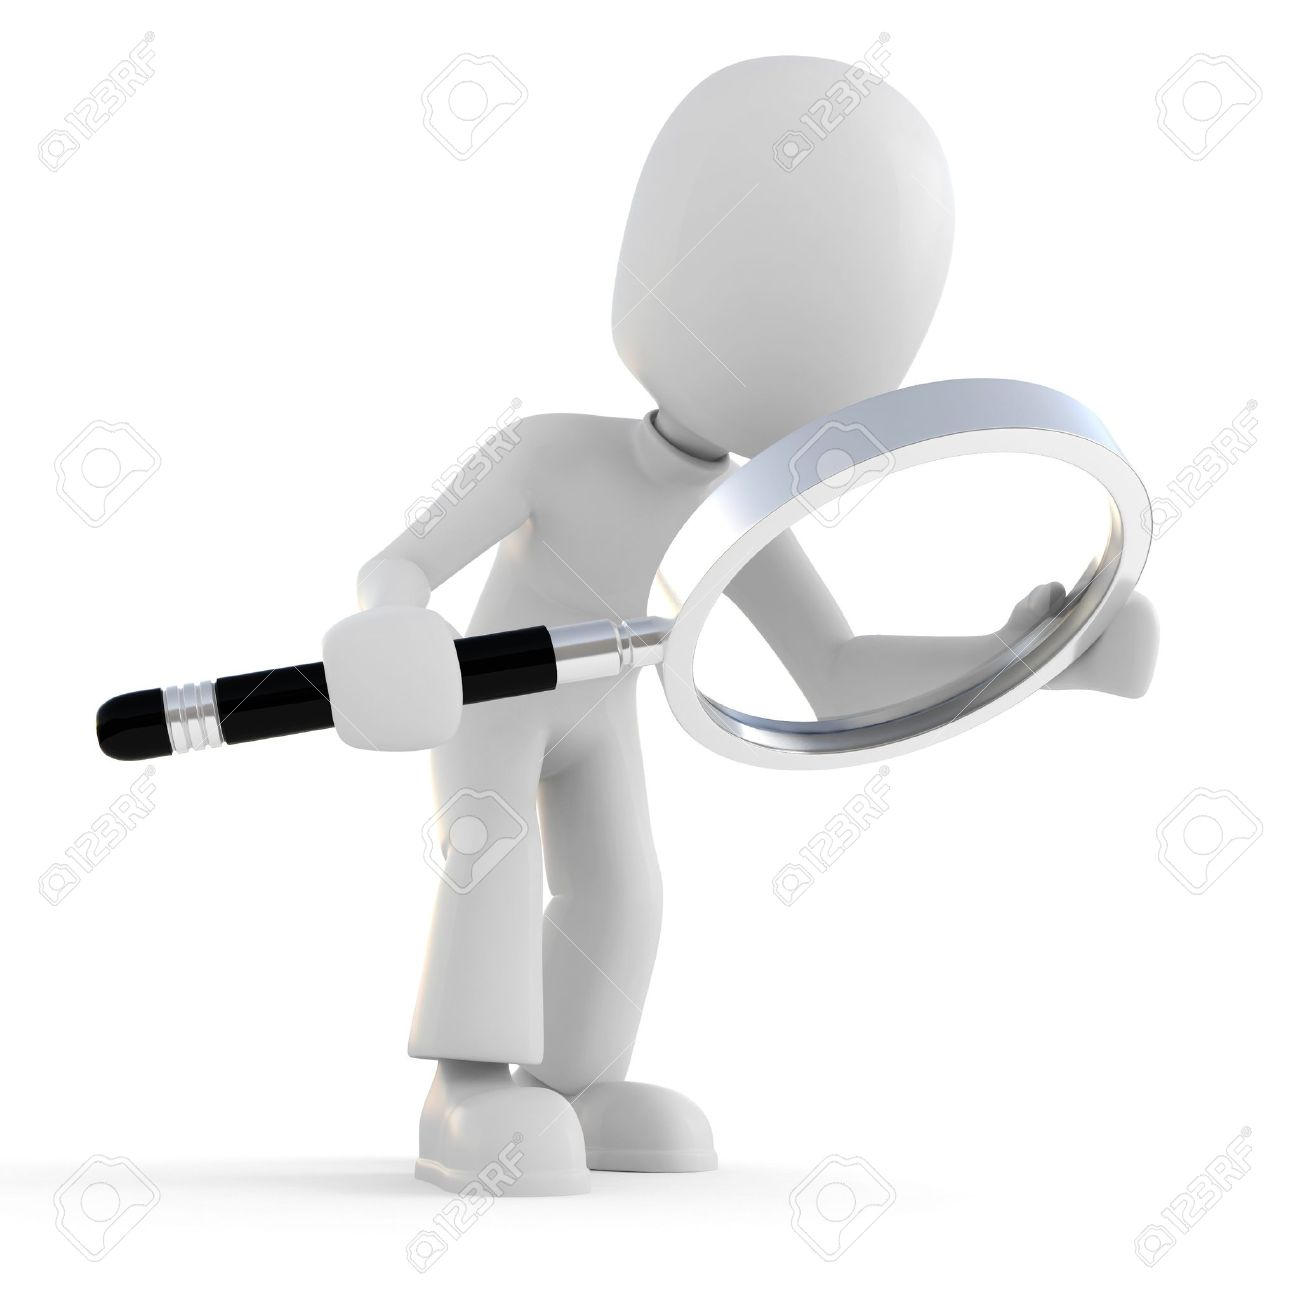 3d Man Holding A Magnifier Glass Stock Photo, Picture And Royalty ...